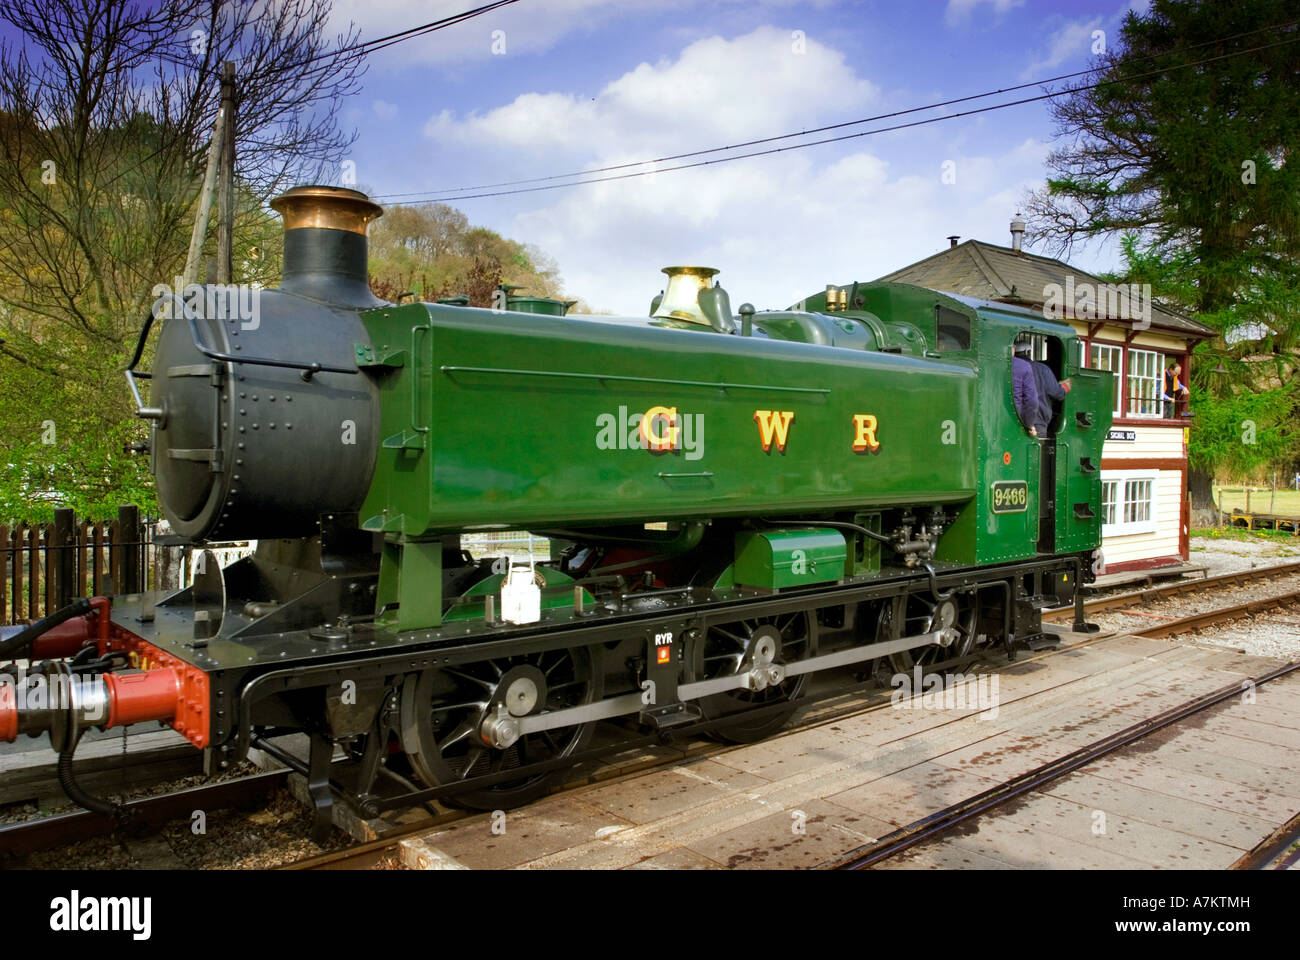 A steam tank engine pictured station on the Llangollen heritage railway with passenger coaches at Glyndyfrdwy Station. Stock Photo